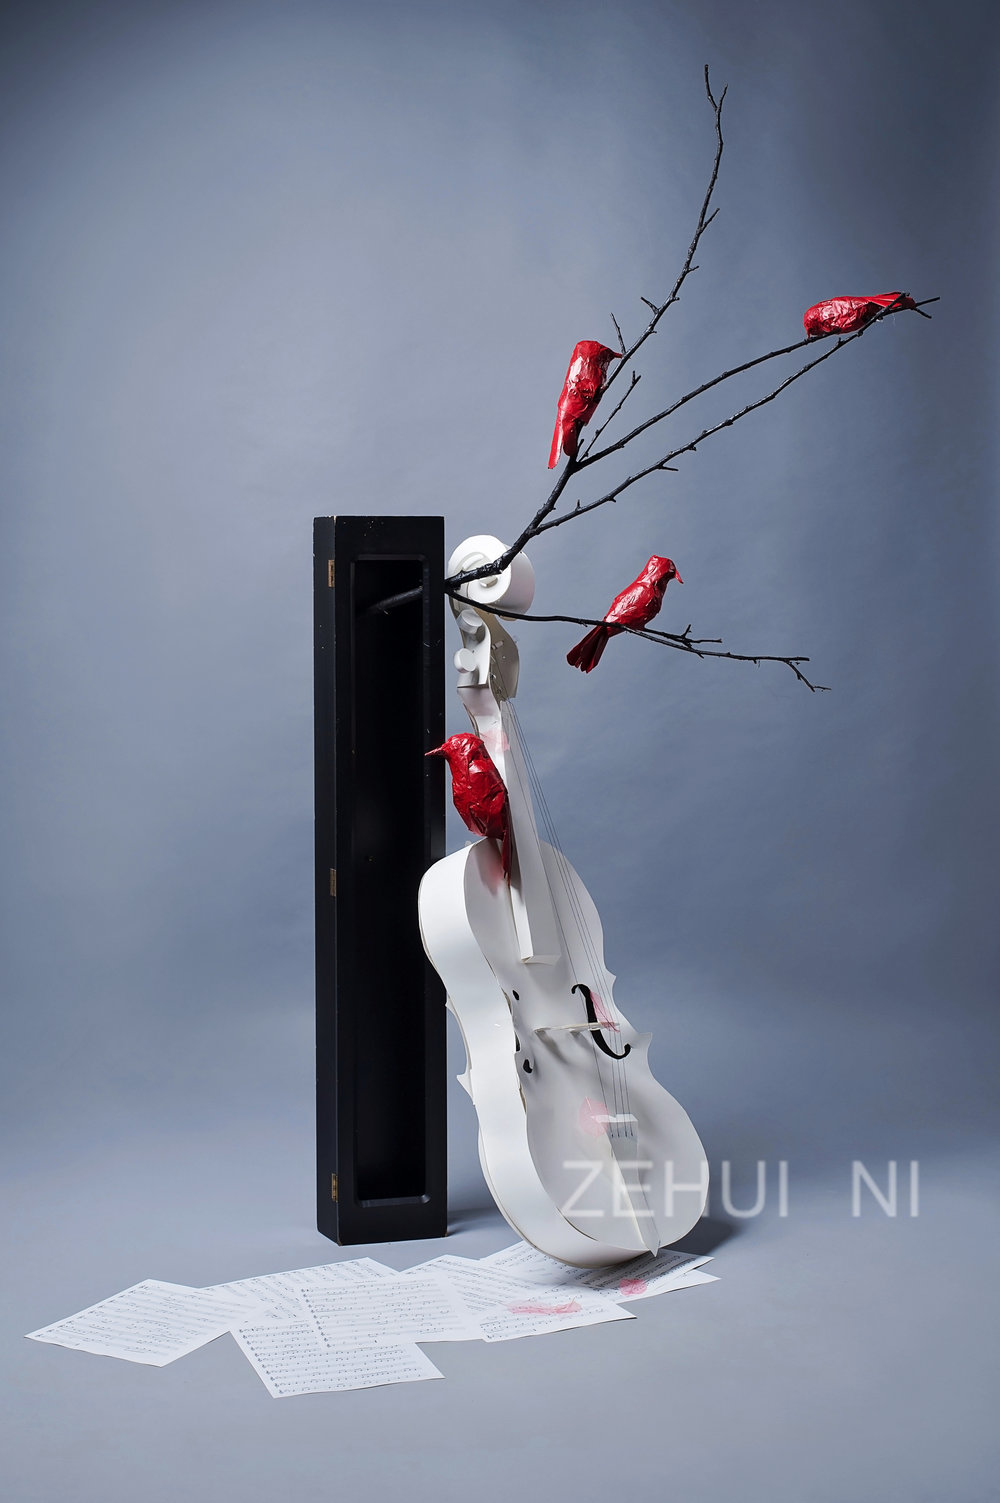 """Red birds on Violin"" by Zehui Ni, 26x22x55in, wood, string, acrylic paint, tape, metal, paper, found branches 